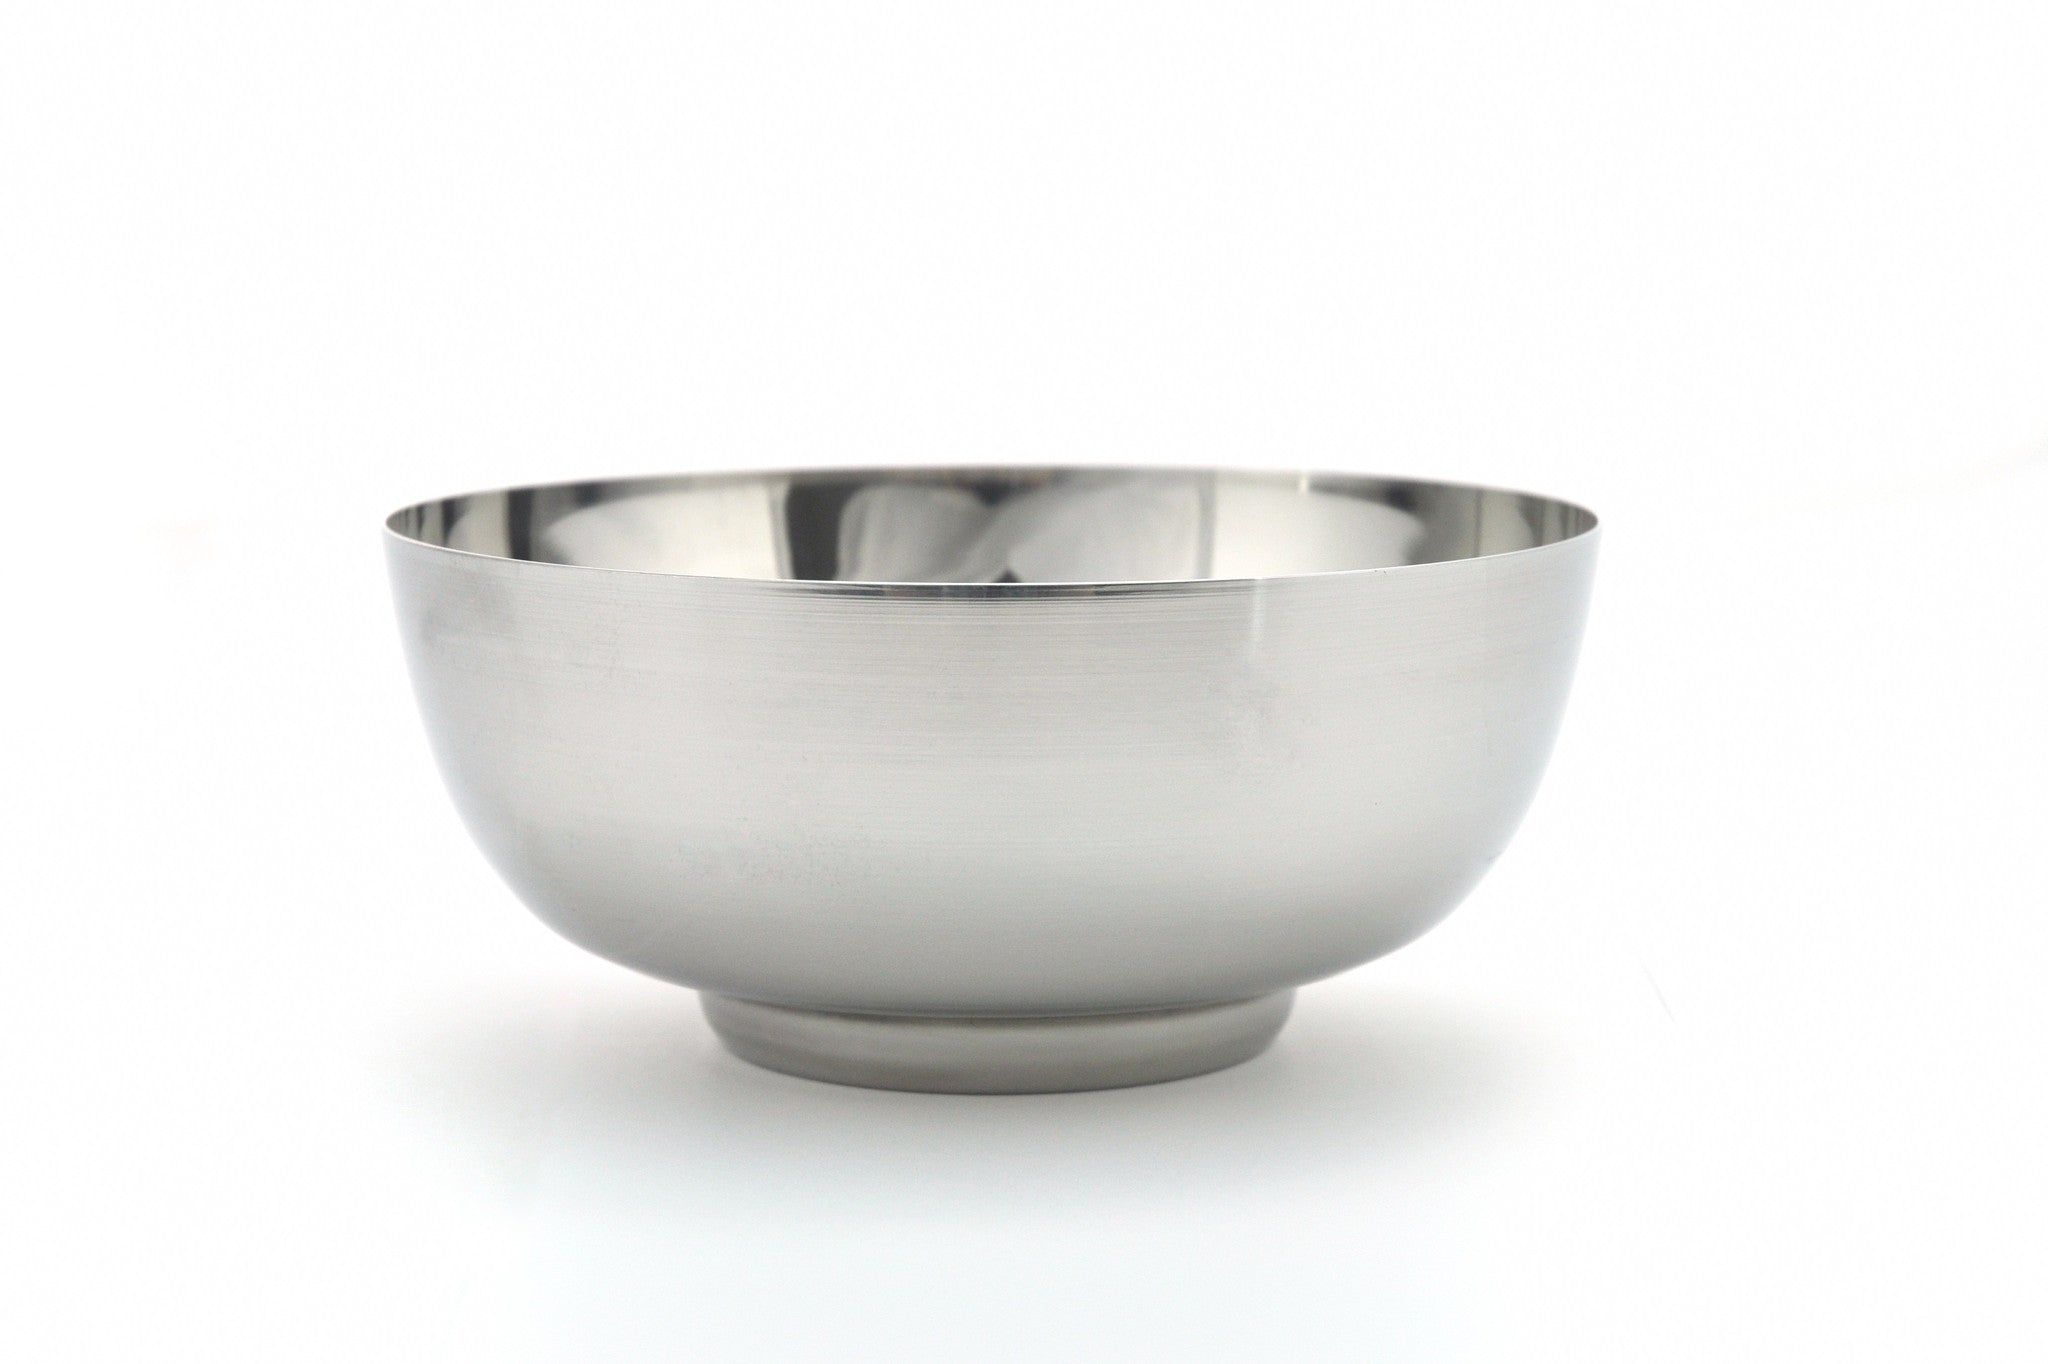 Stainless Steel Naengmyun Bowl 냉면, Stainless Steel - eKitchenary